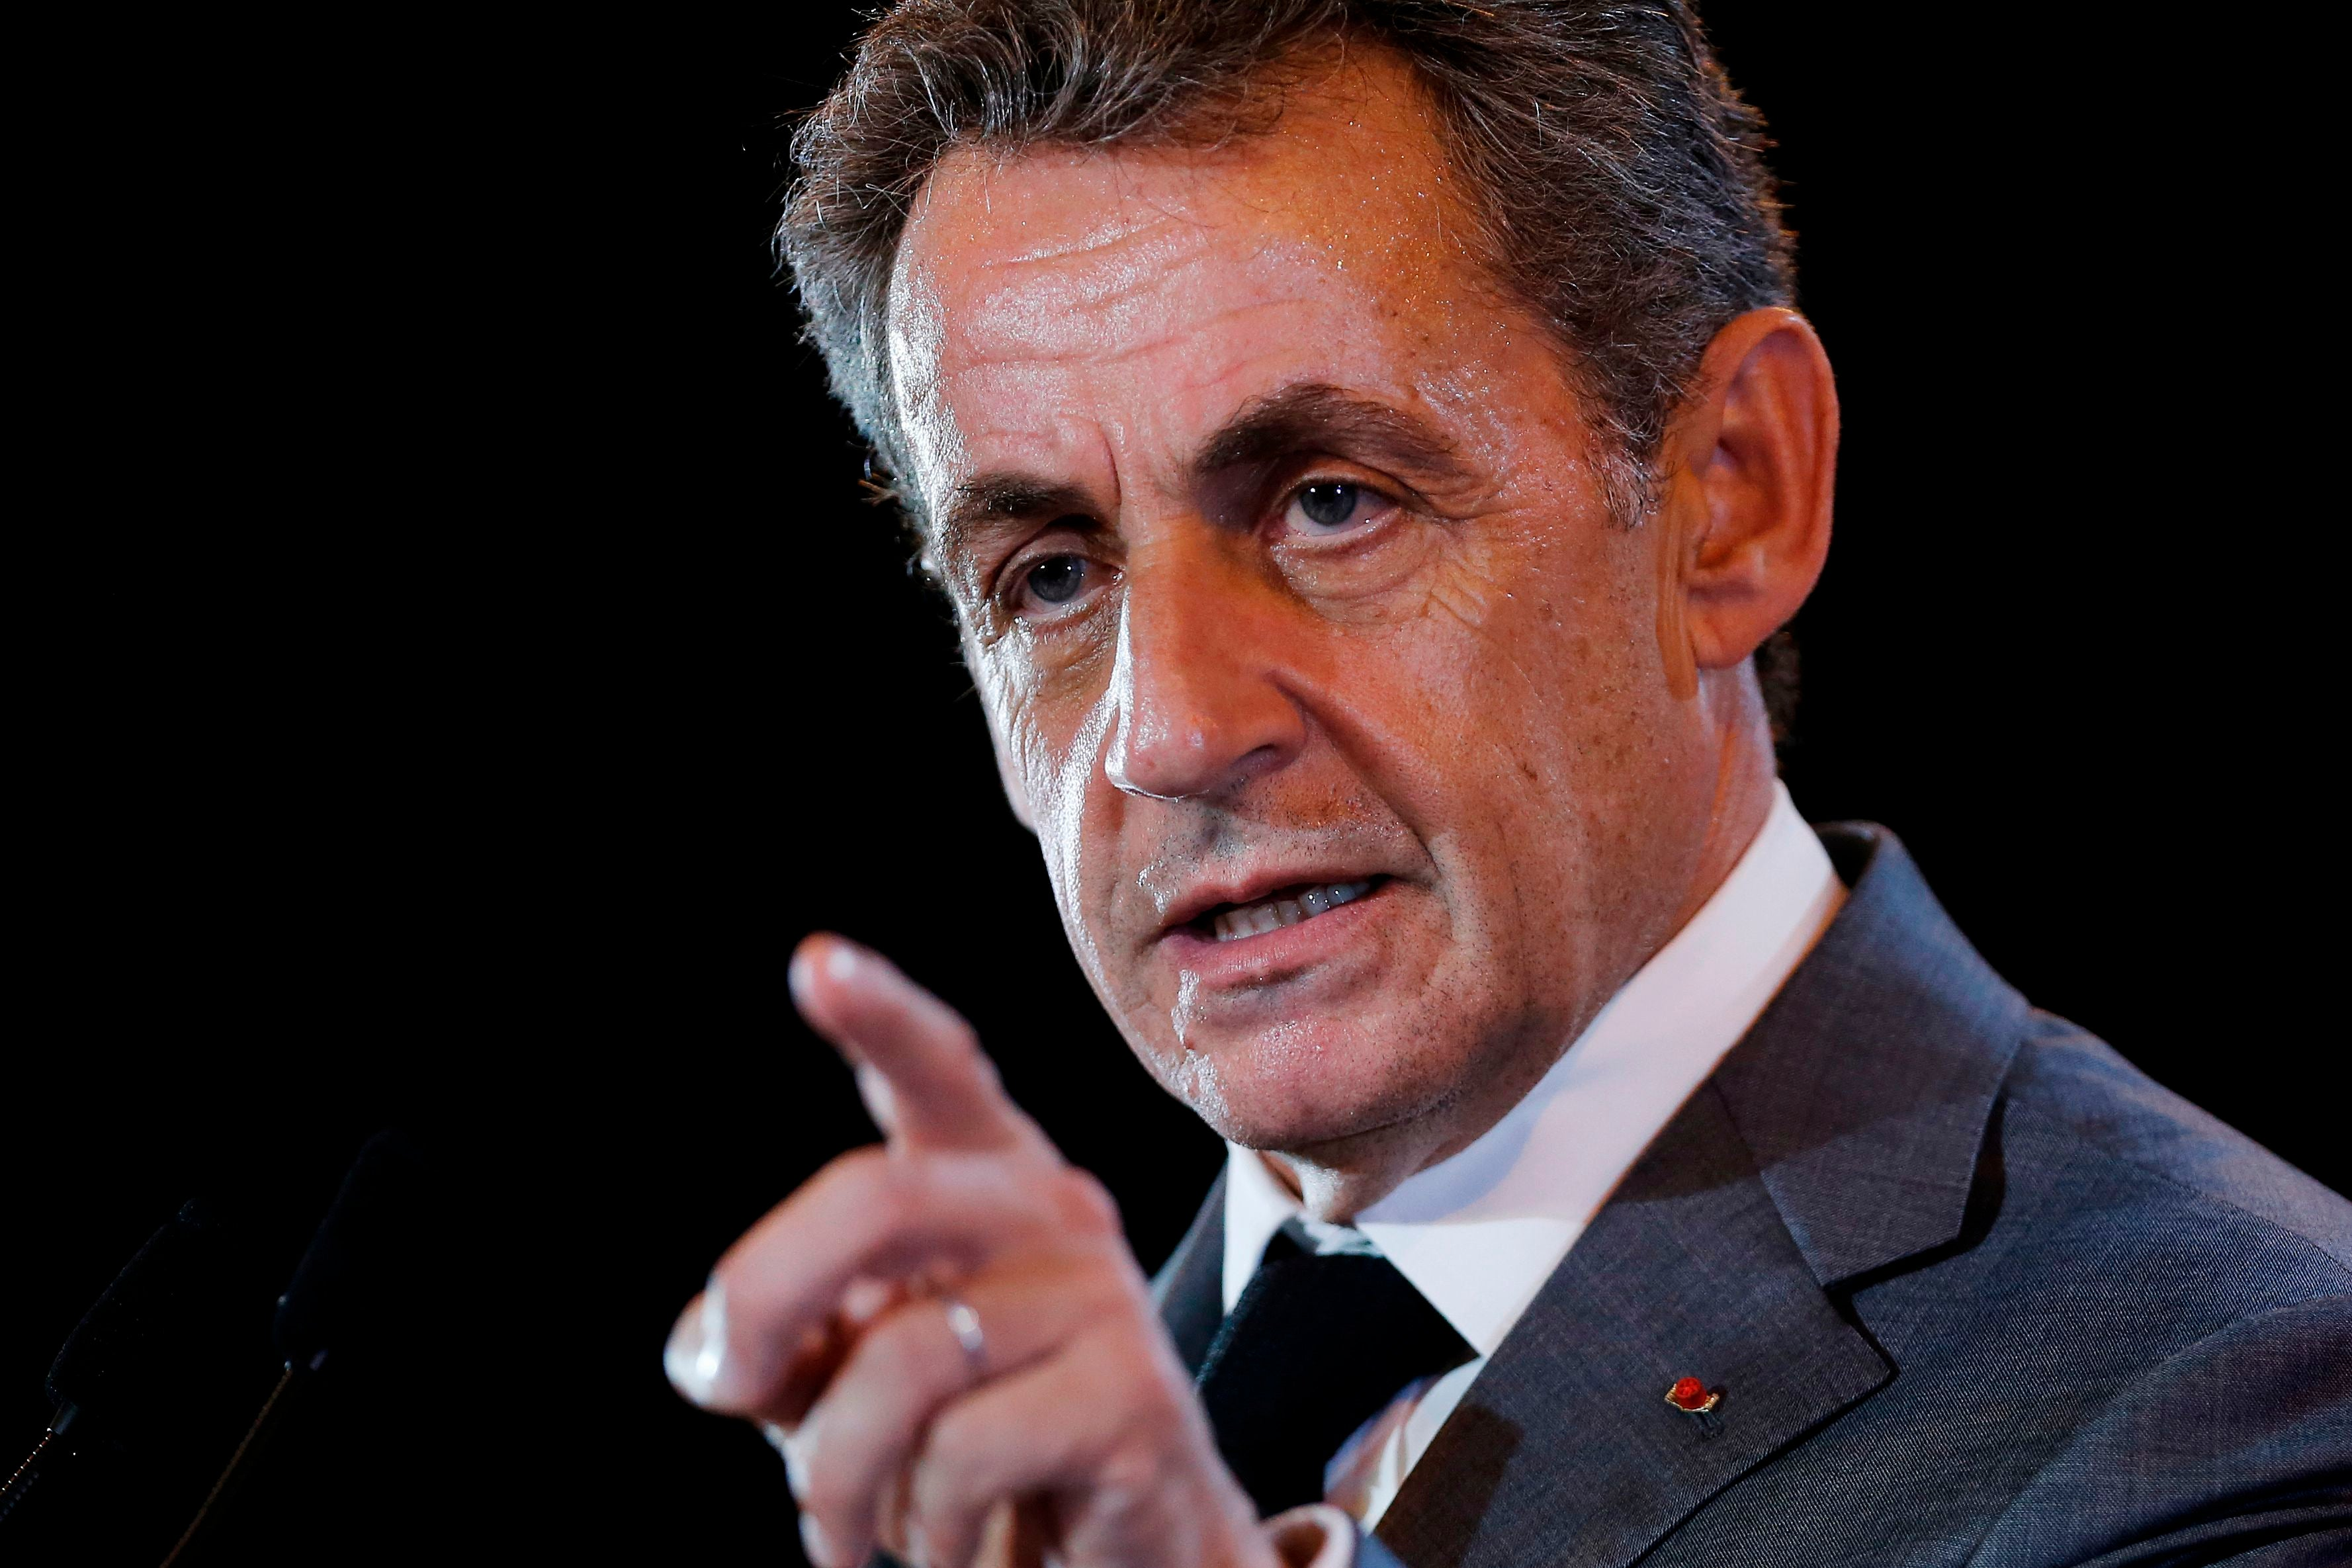 Nicolas Sarkozy In Racism Row After Suggesting People Can T Say Monkey Anymore Due To Book Renaming The Independent